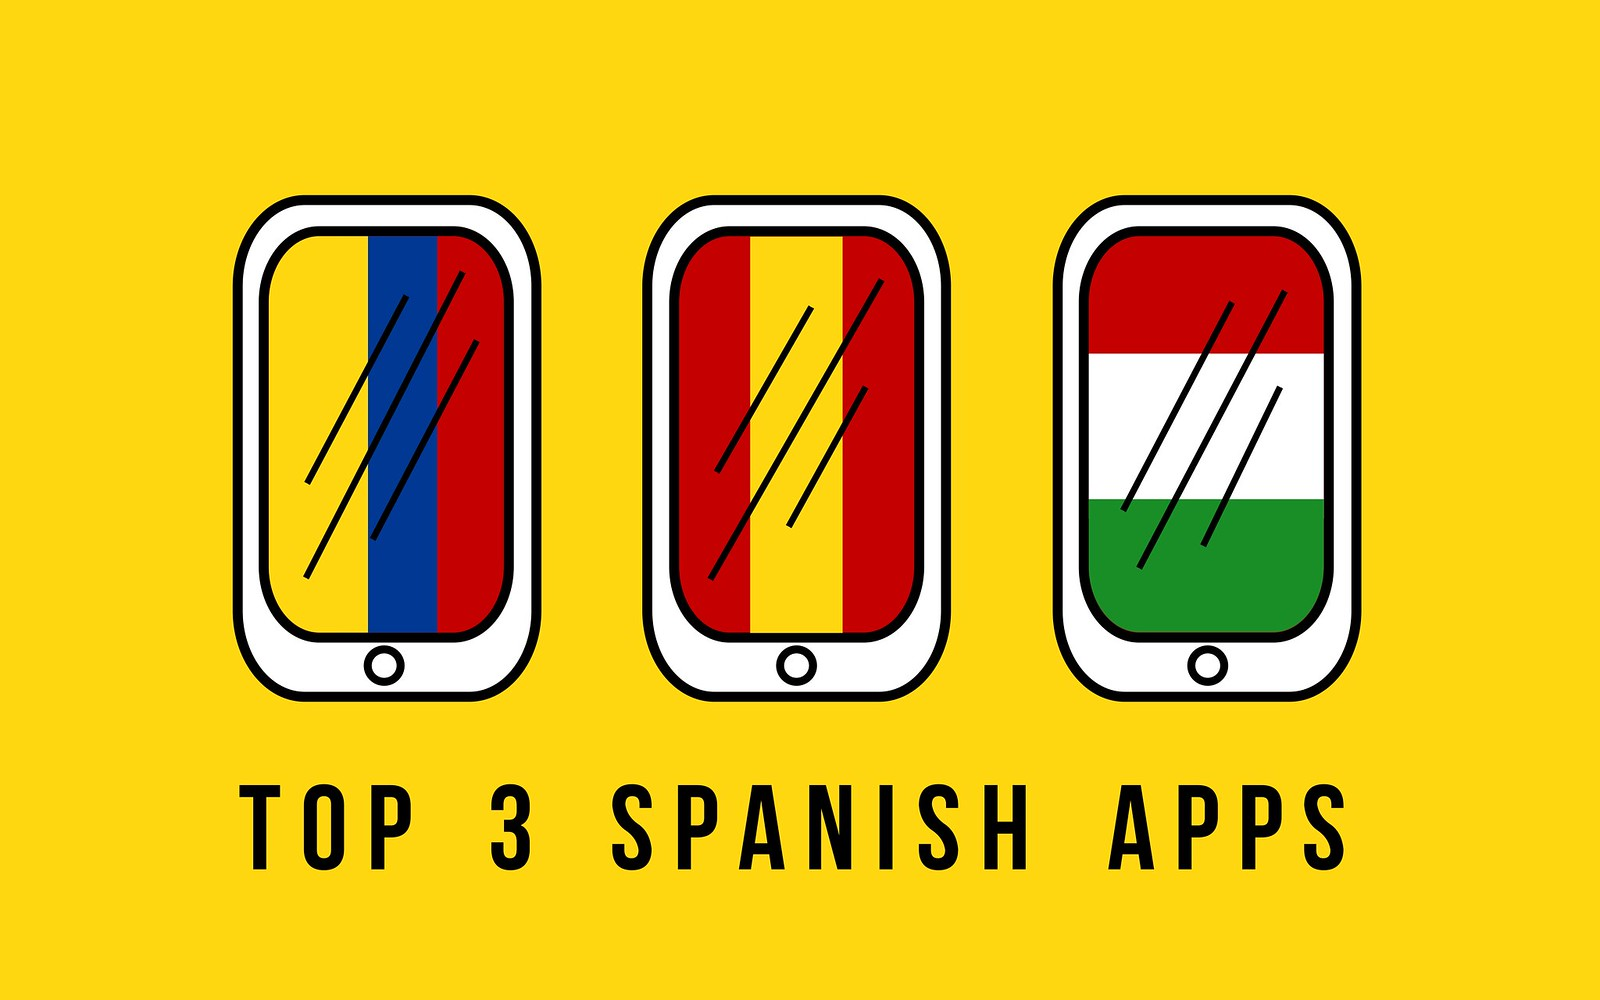 Best dating apps in spanish